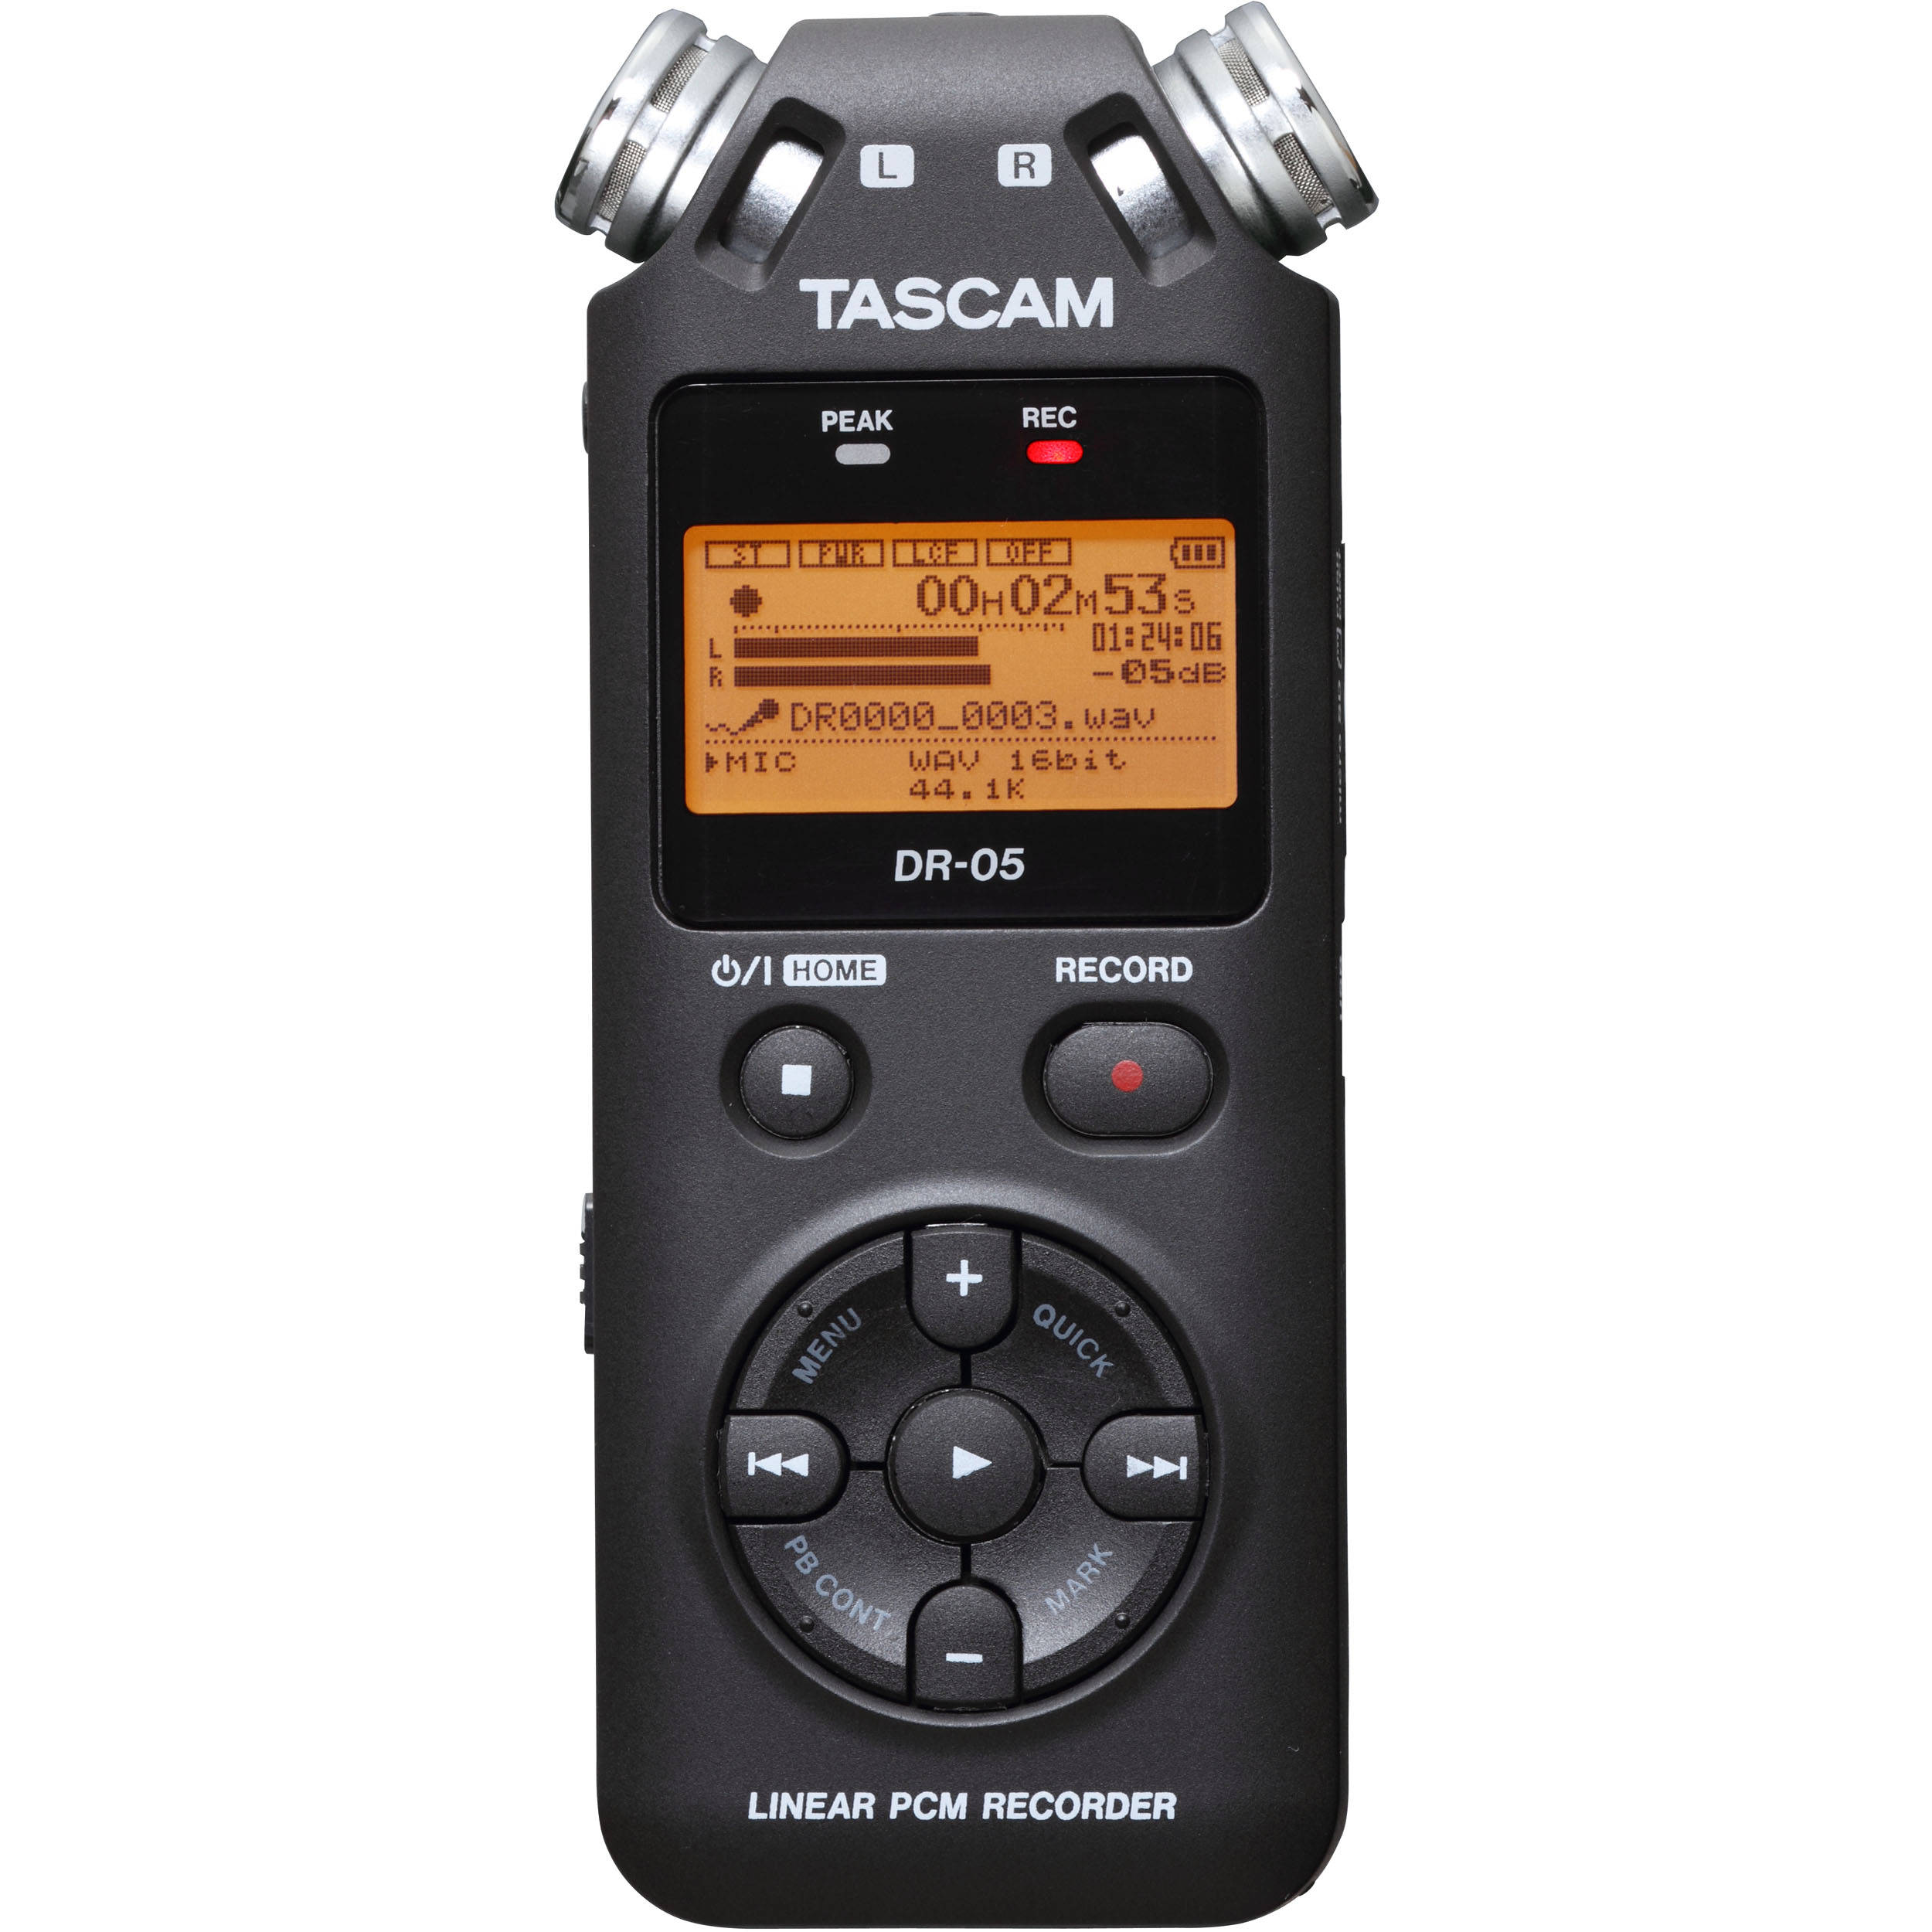 DR-05 from Tascam is a portable and compact recorder